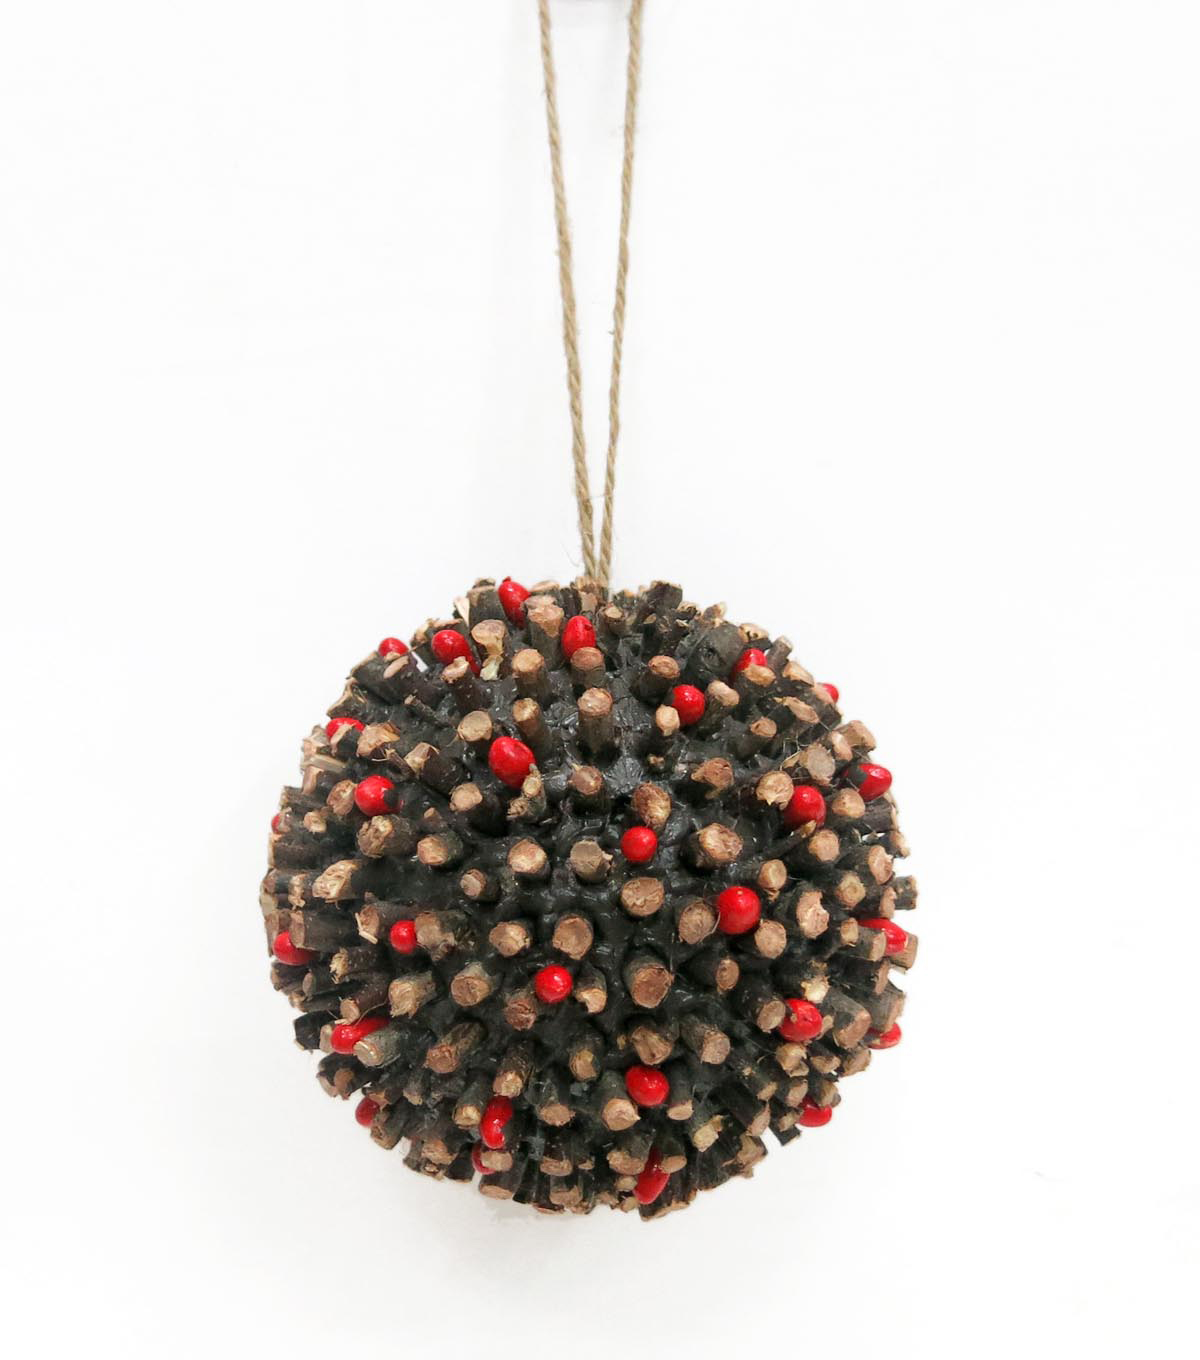 Maker's Holiday Woodland Lodge Natural Ball with Pepper Berry Ornament